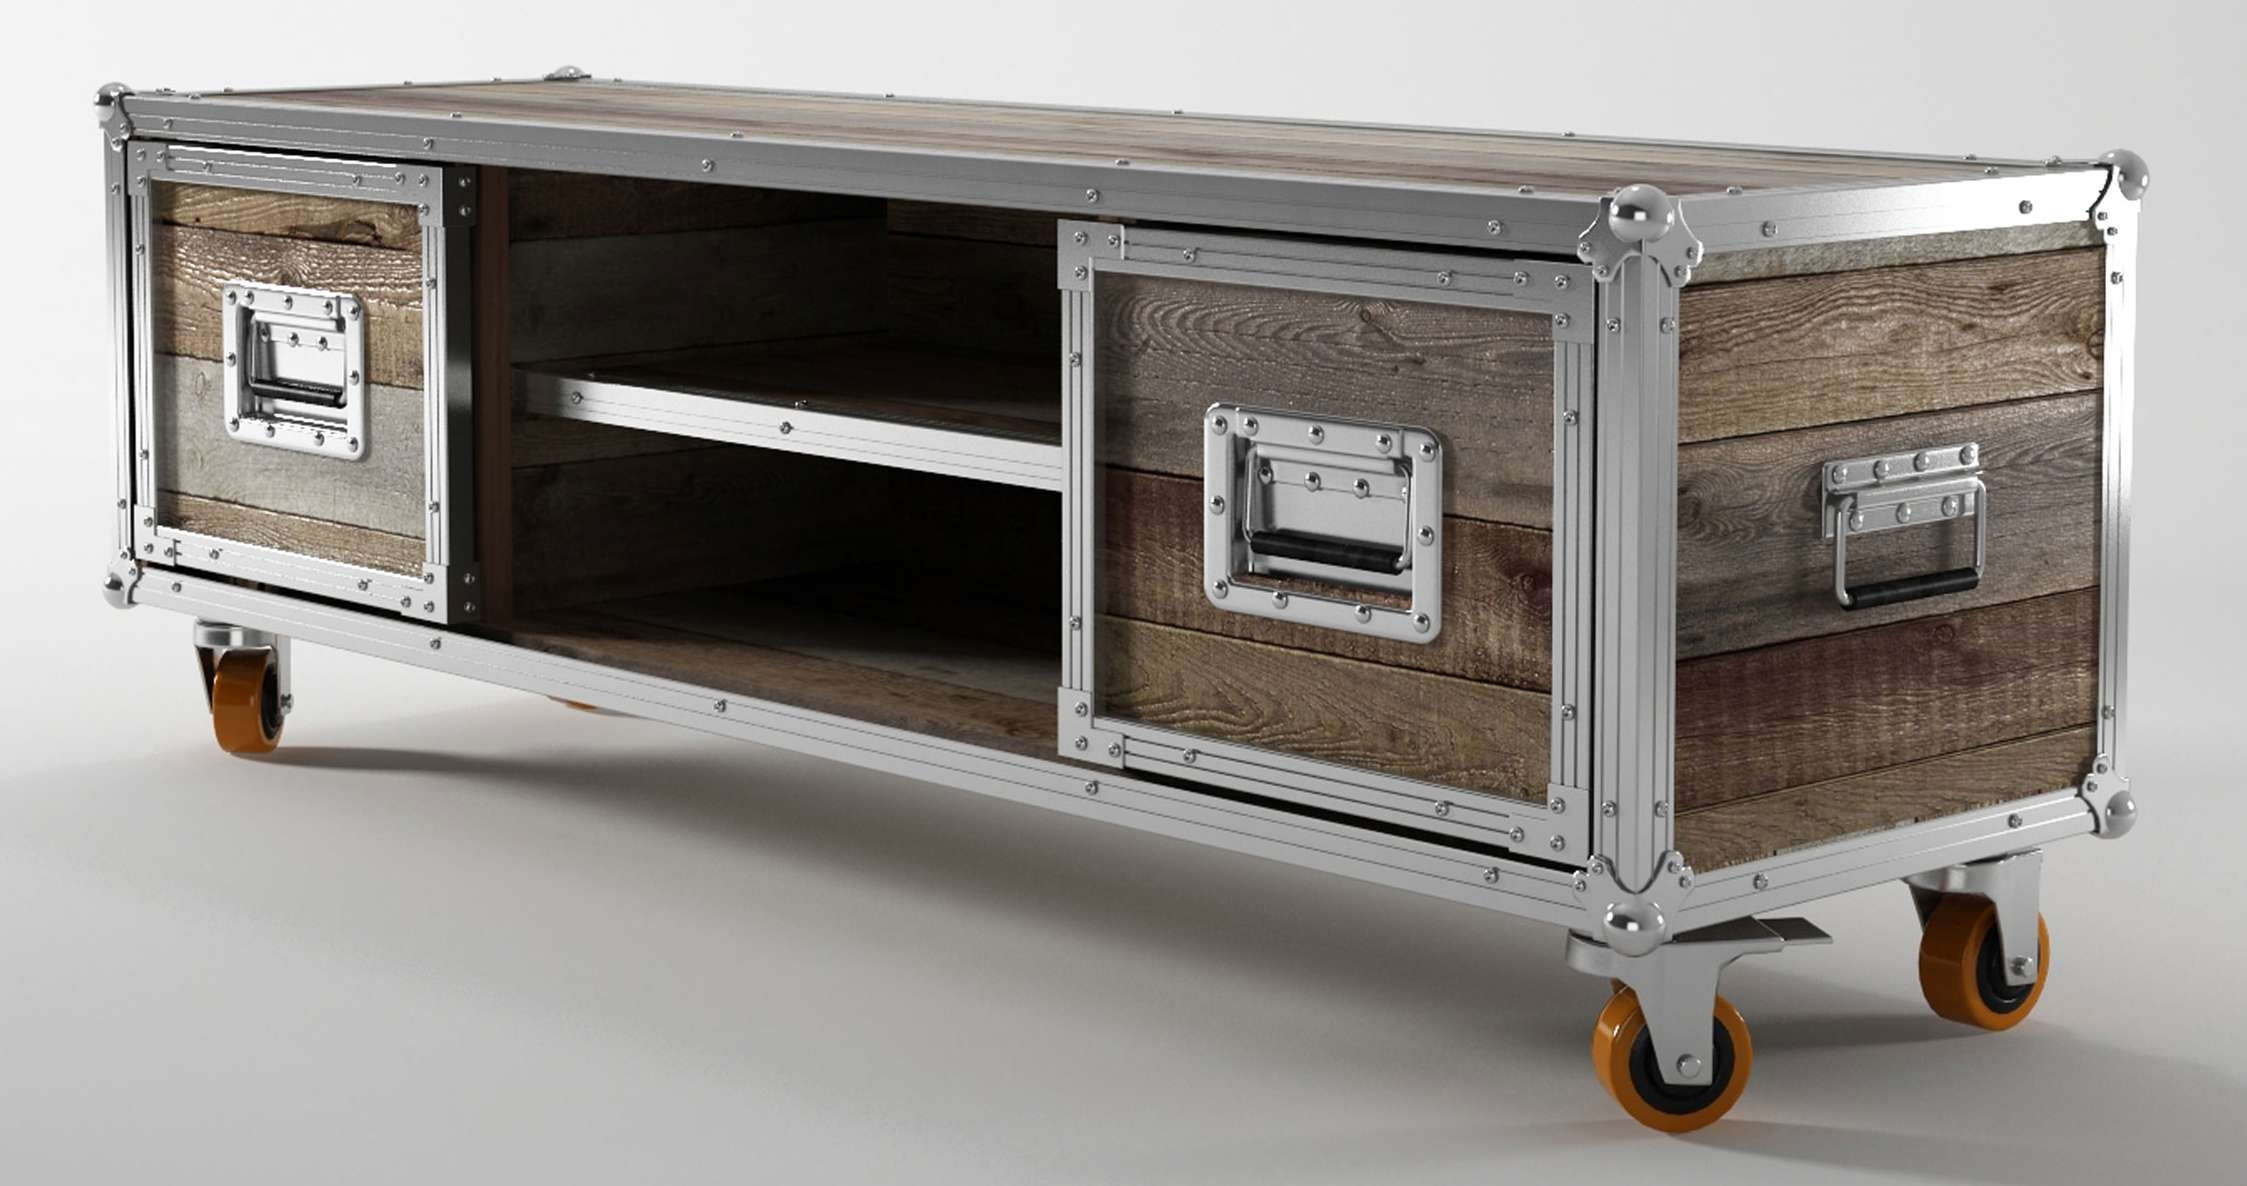 Elegant Reclaimed Wood Tv Stand 31 For Your Small Home Remodel With Reclaimed Wood And Metal Tv Stands (View 5 of 15)